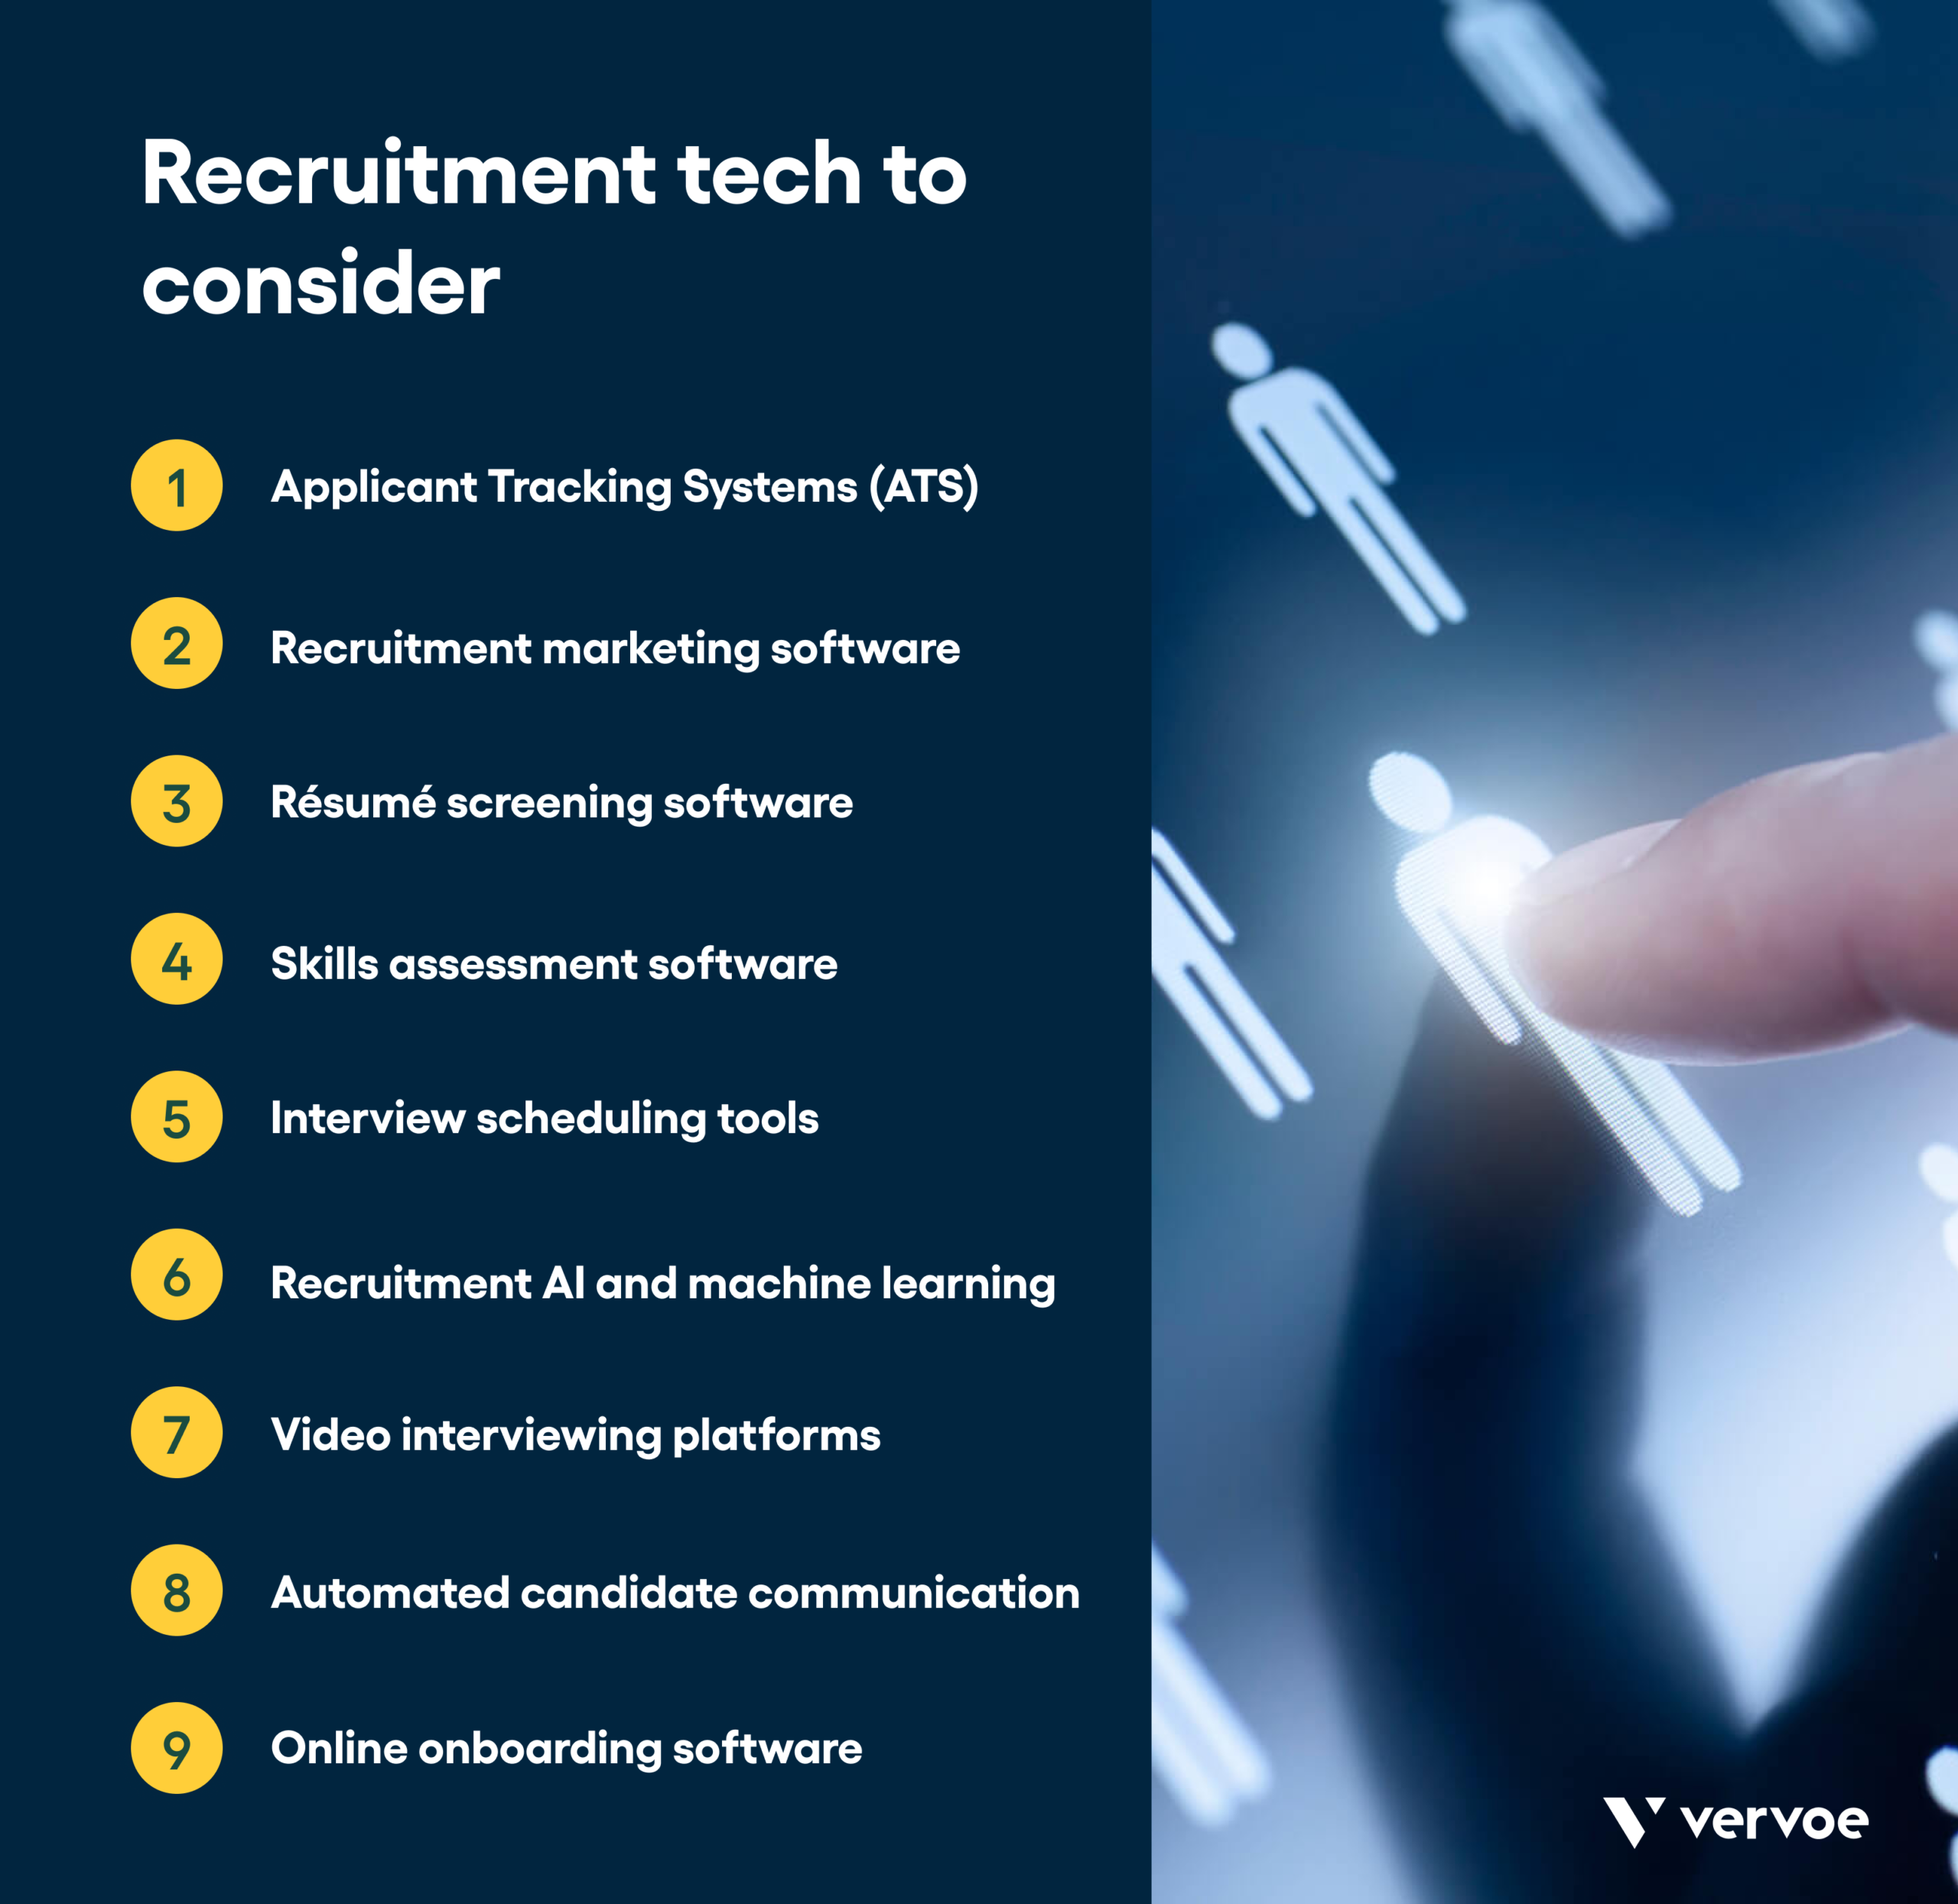 Infographic showing recruitment tech to consider